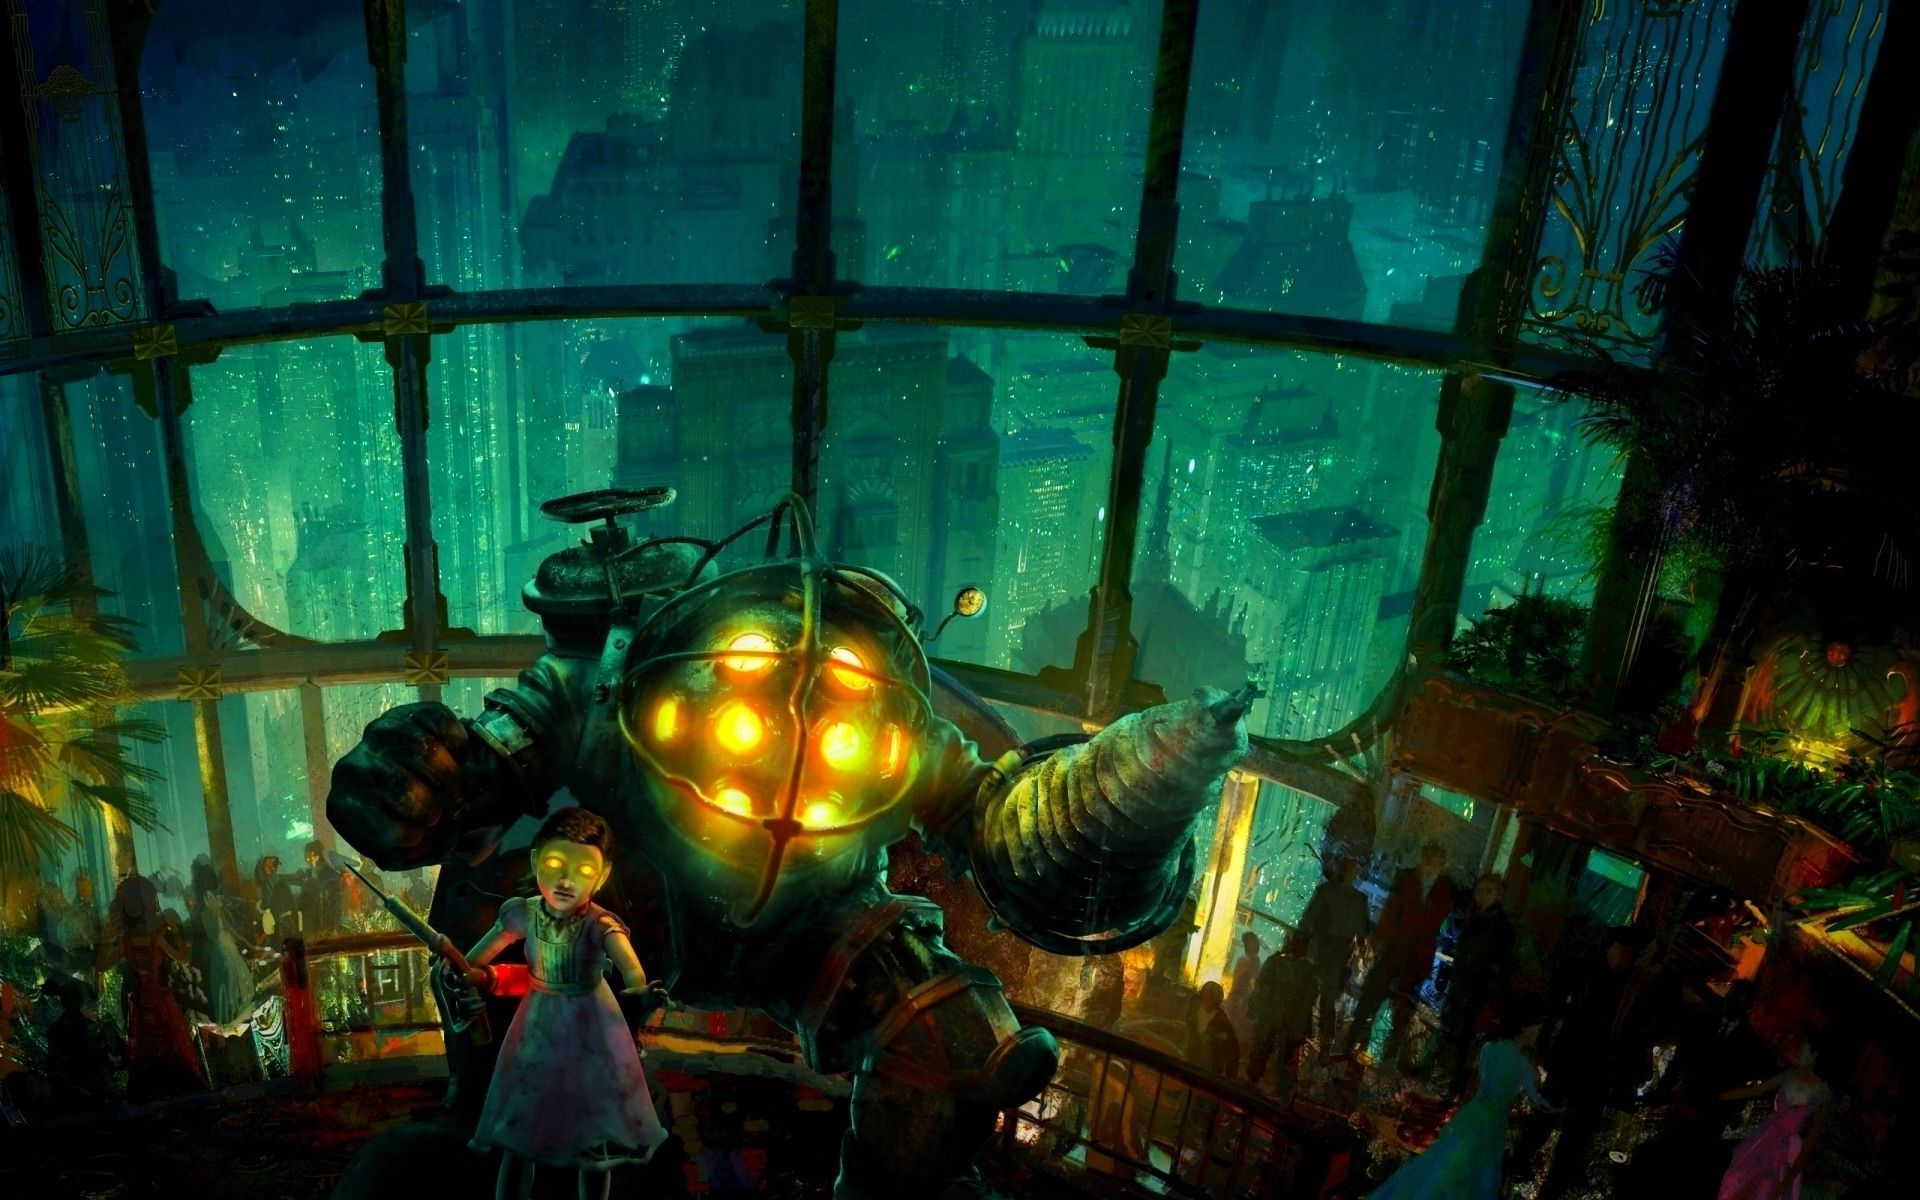 Free Download Big Daddy And Little Sister Bioshock Wallpaper 10011